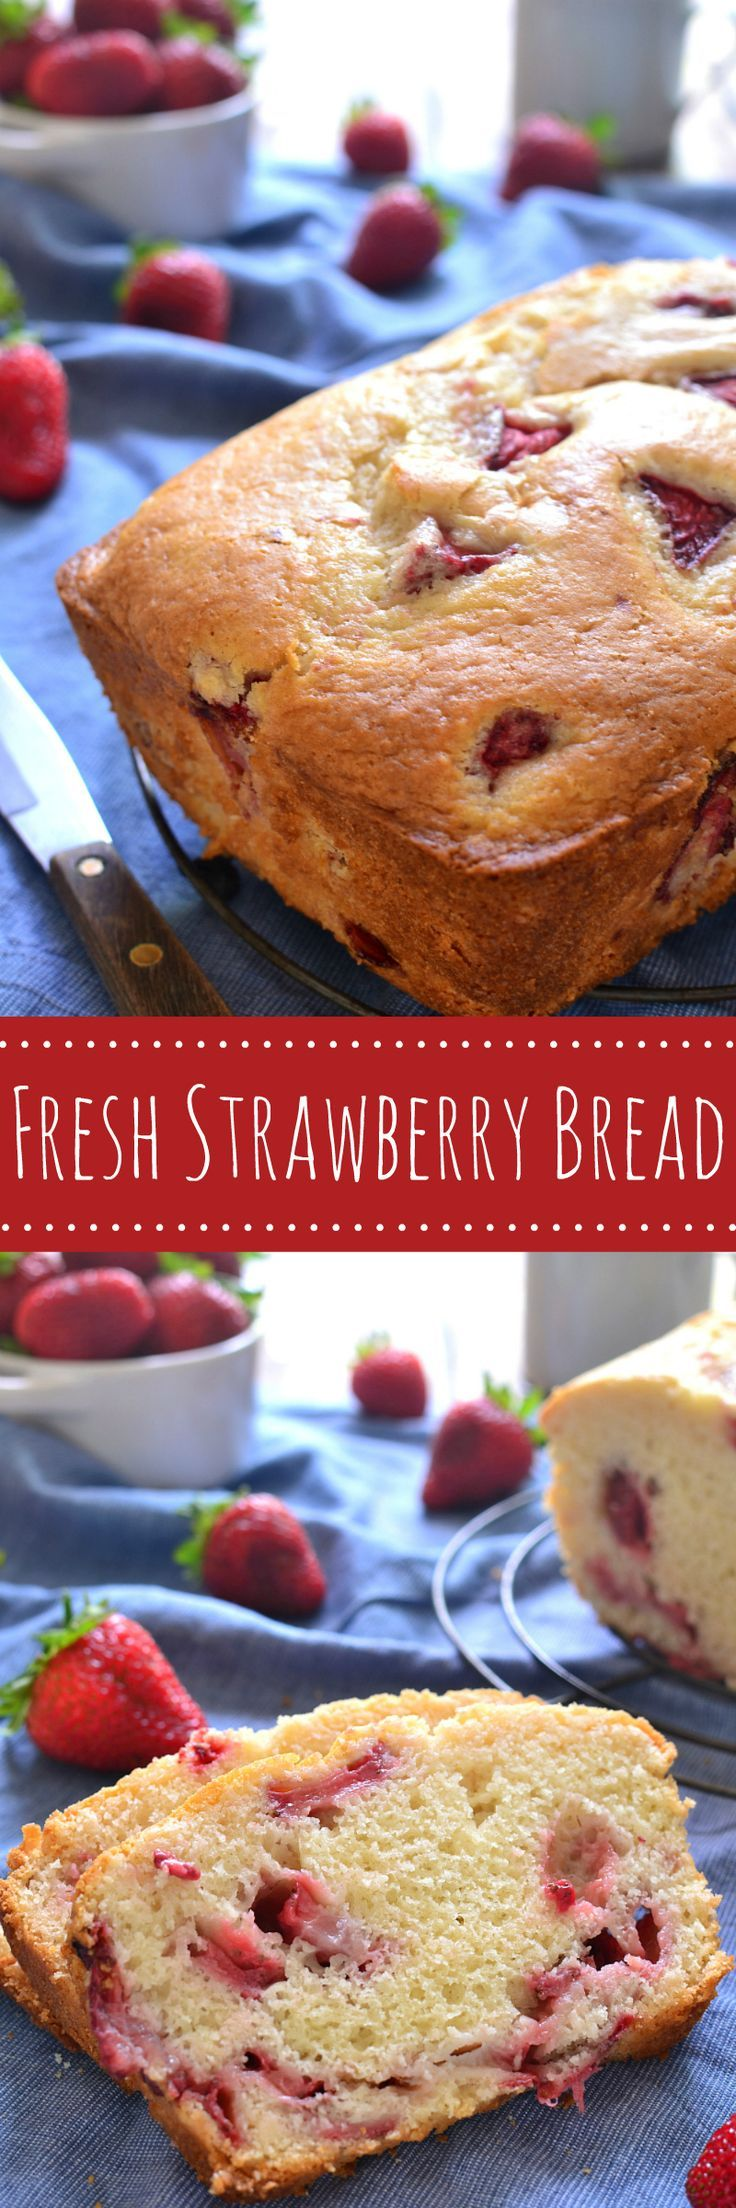 Fresh Strawberry Bread